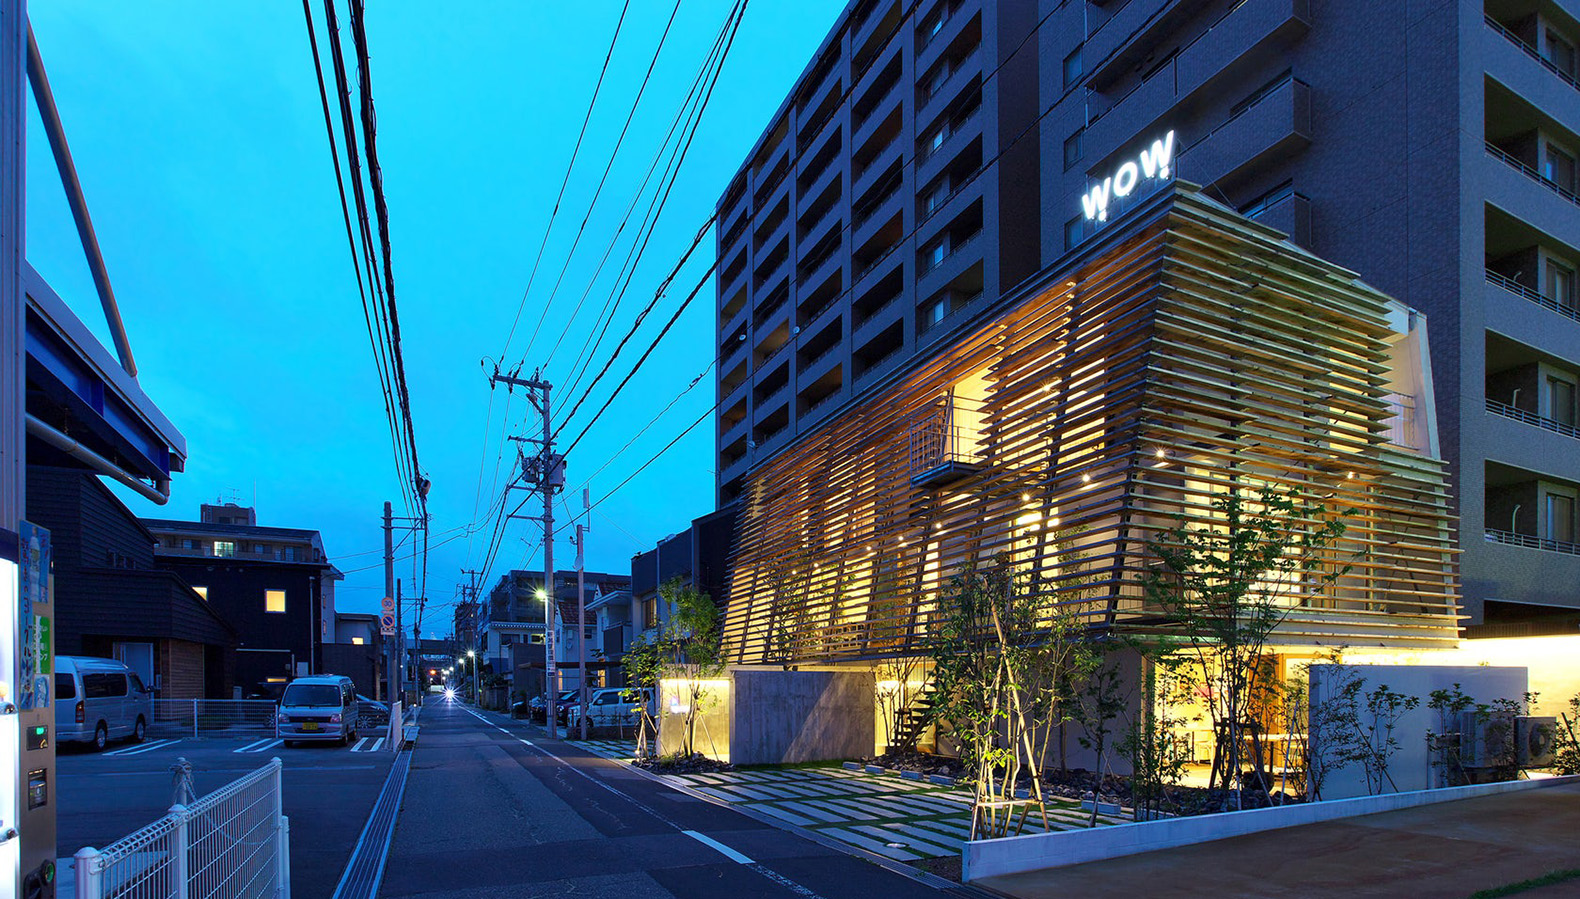 This gorgeous glowing building is wrapped in an elegant slatted screen